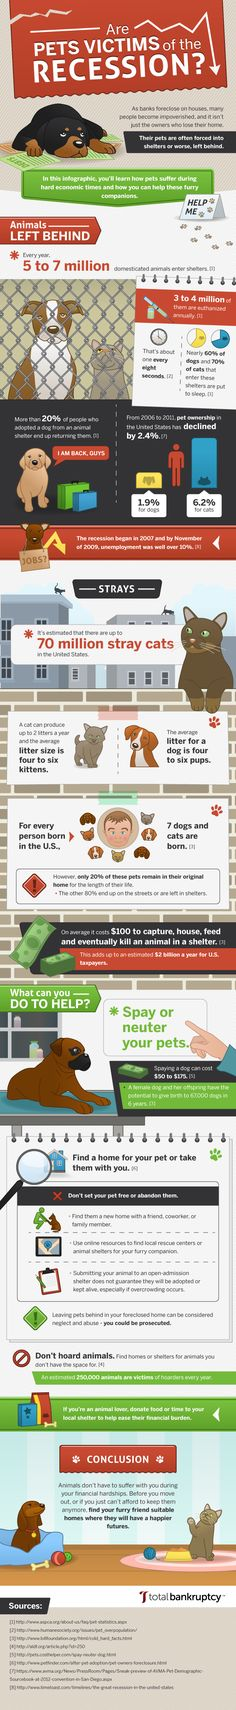 Pets: The other victims of the financial crisis. Another reason why adopting from a shelter or rescue is so important!